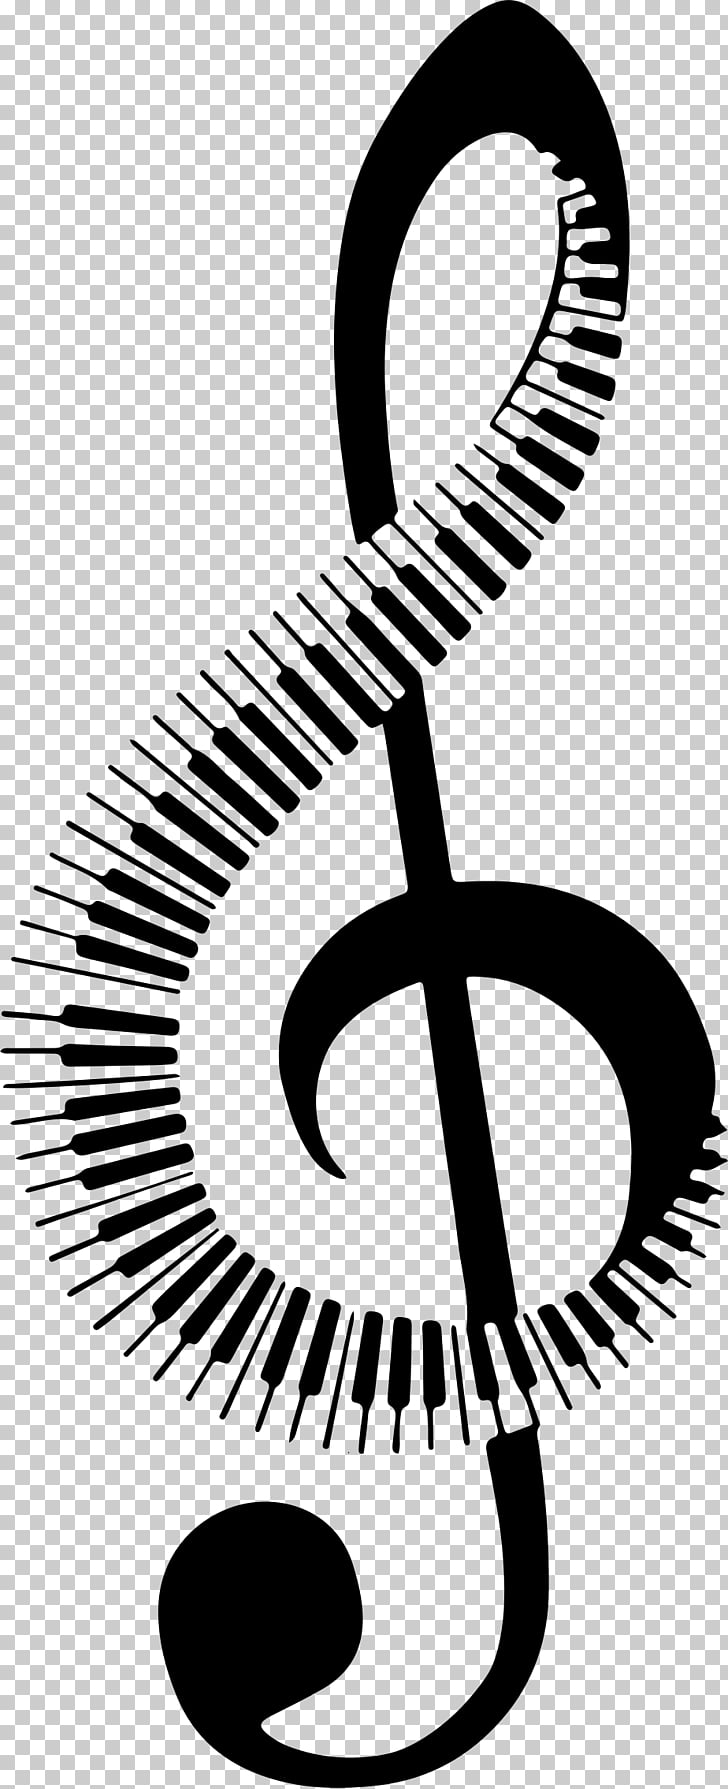 Musical note Piano , piano keyboard PNG clipart.